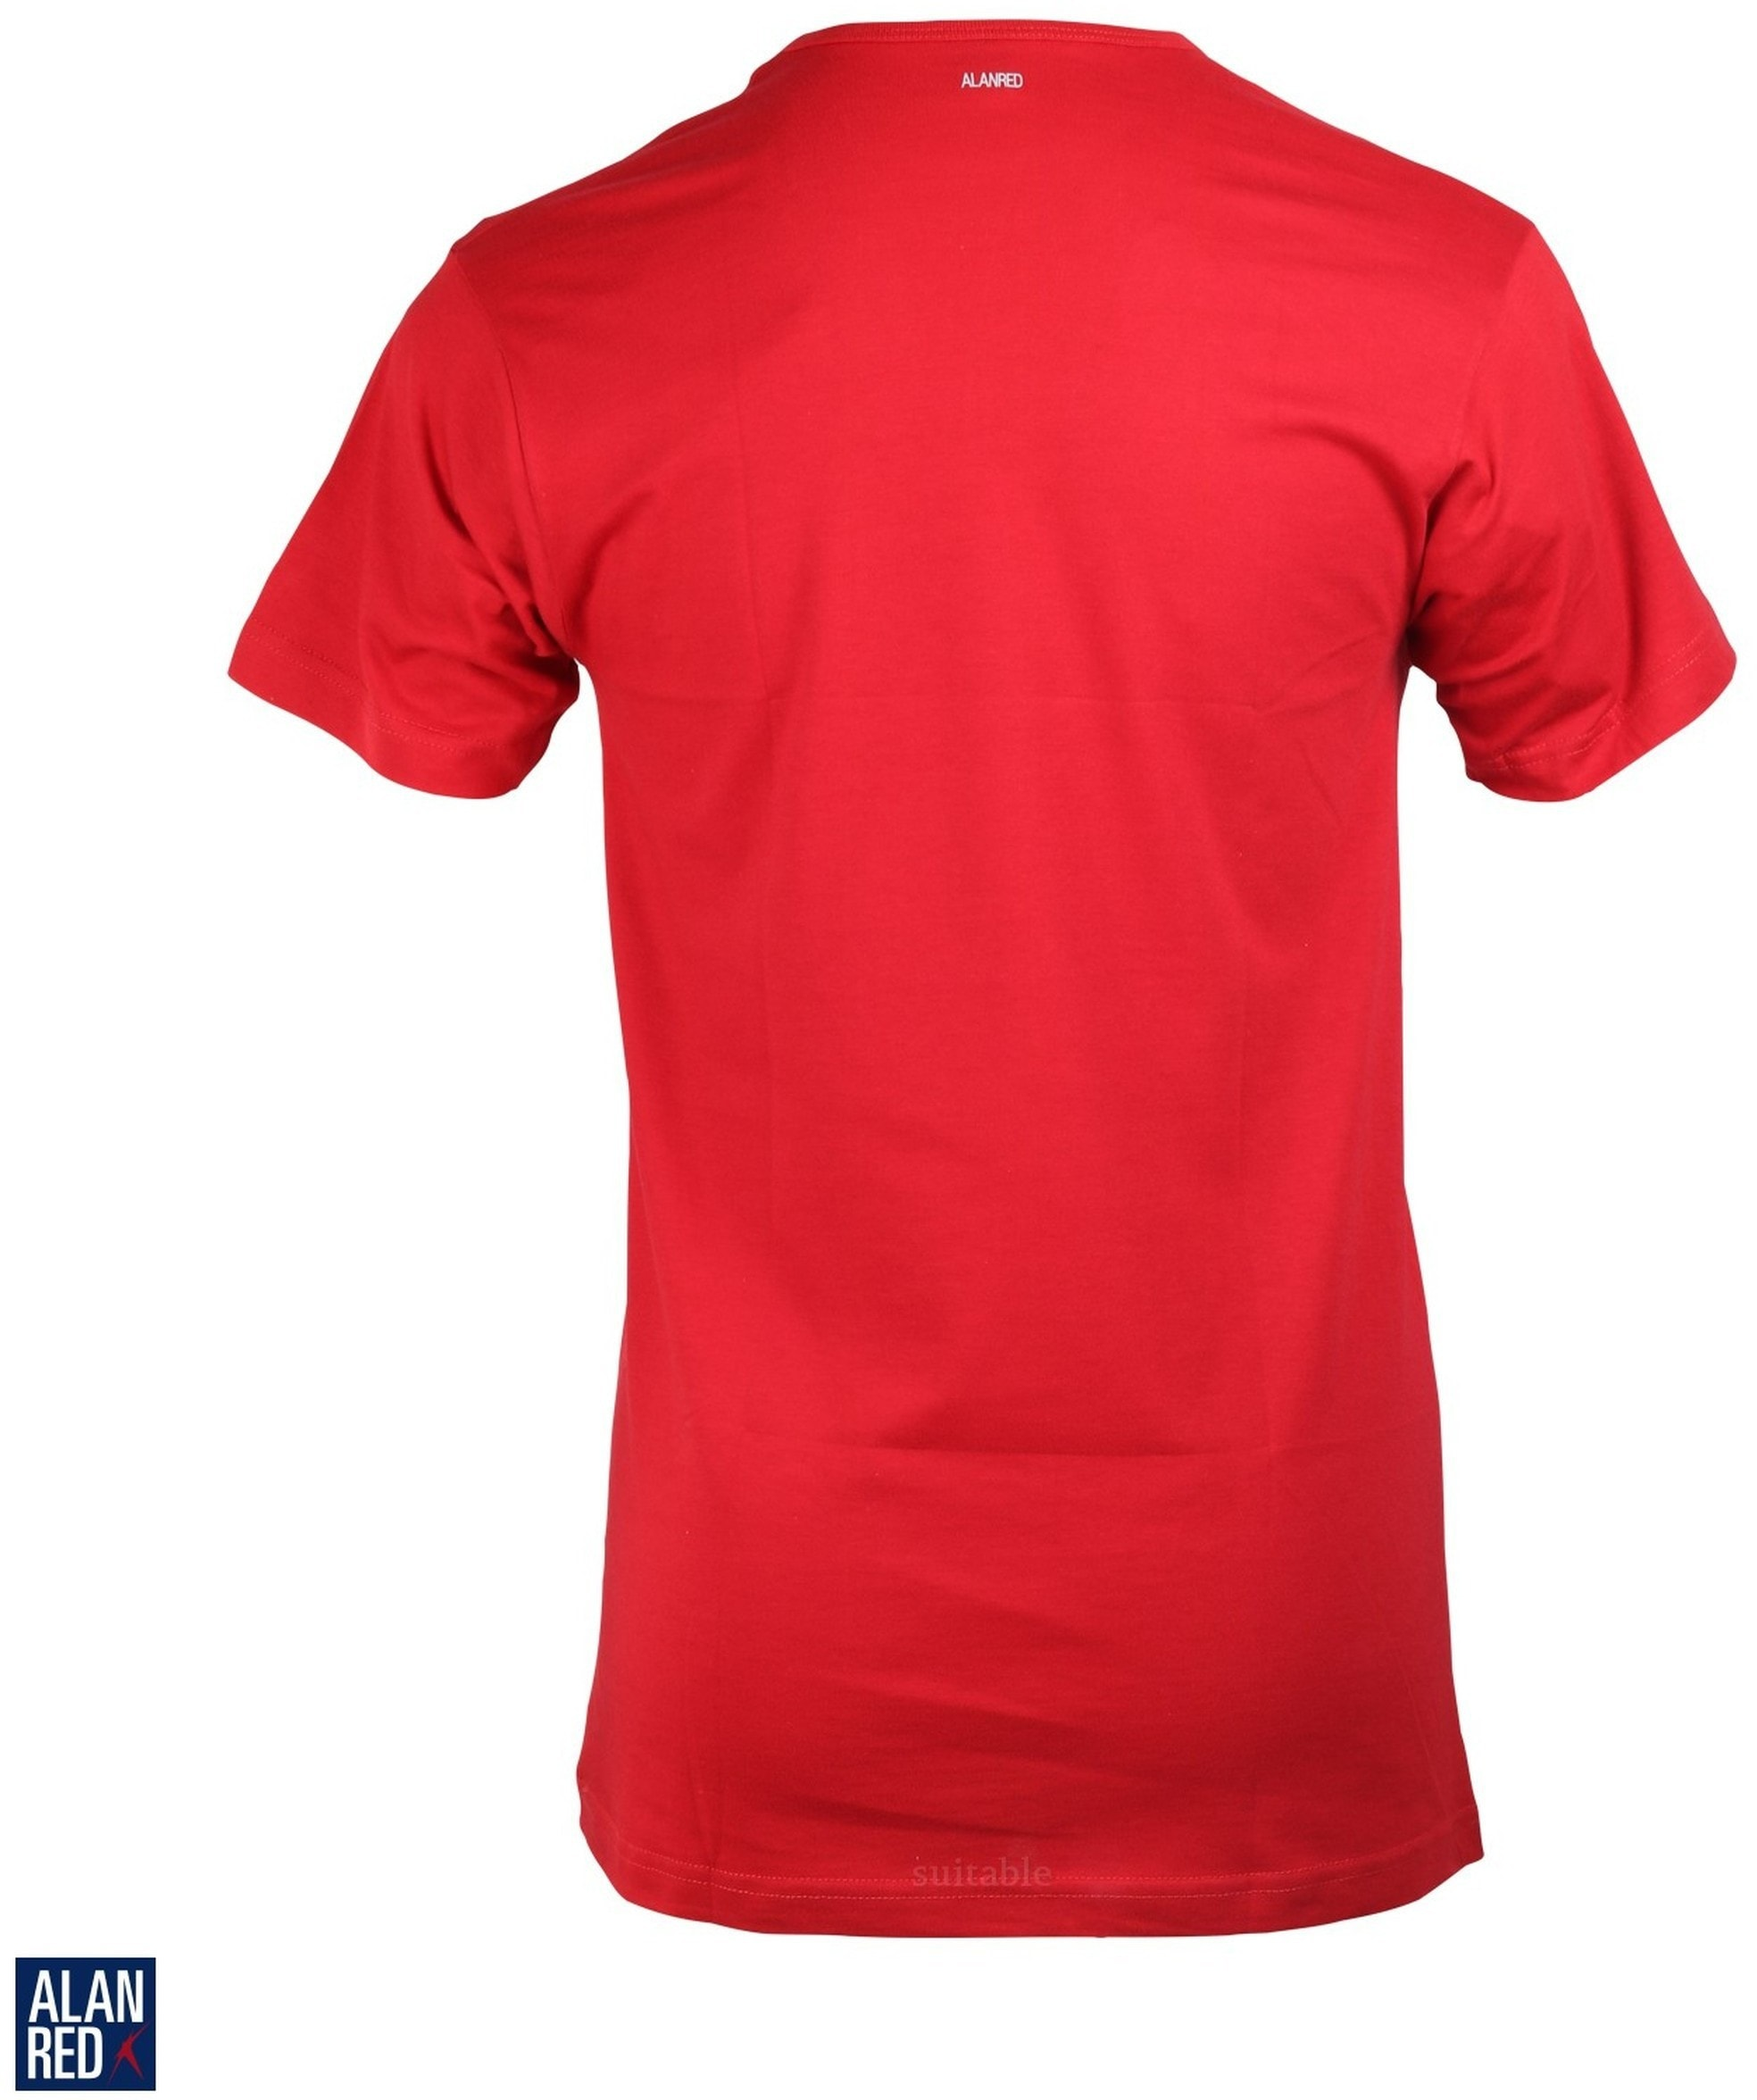 Alan Red Derby O-Neck T-shirt Red 1-Pack foto 2